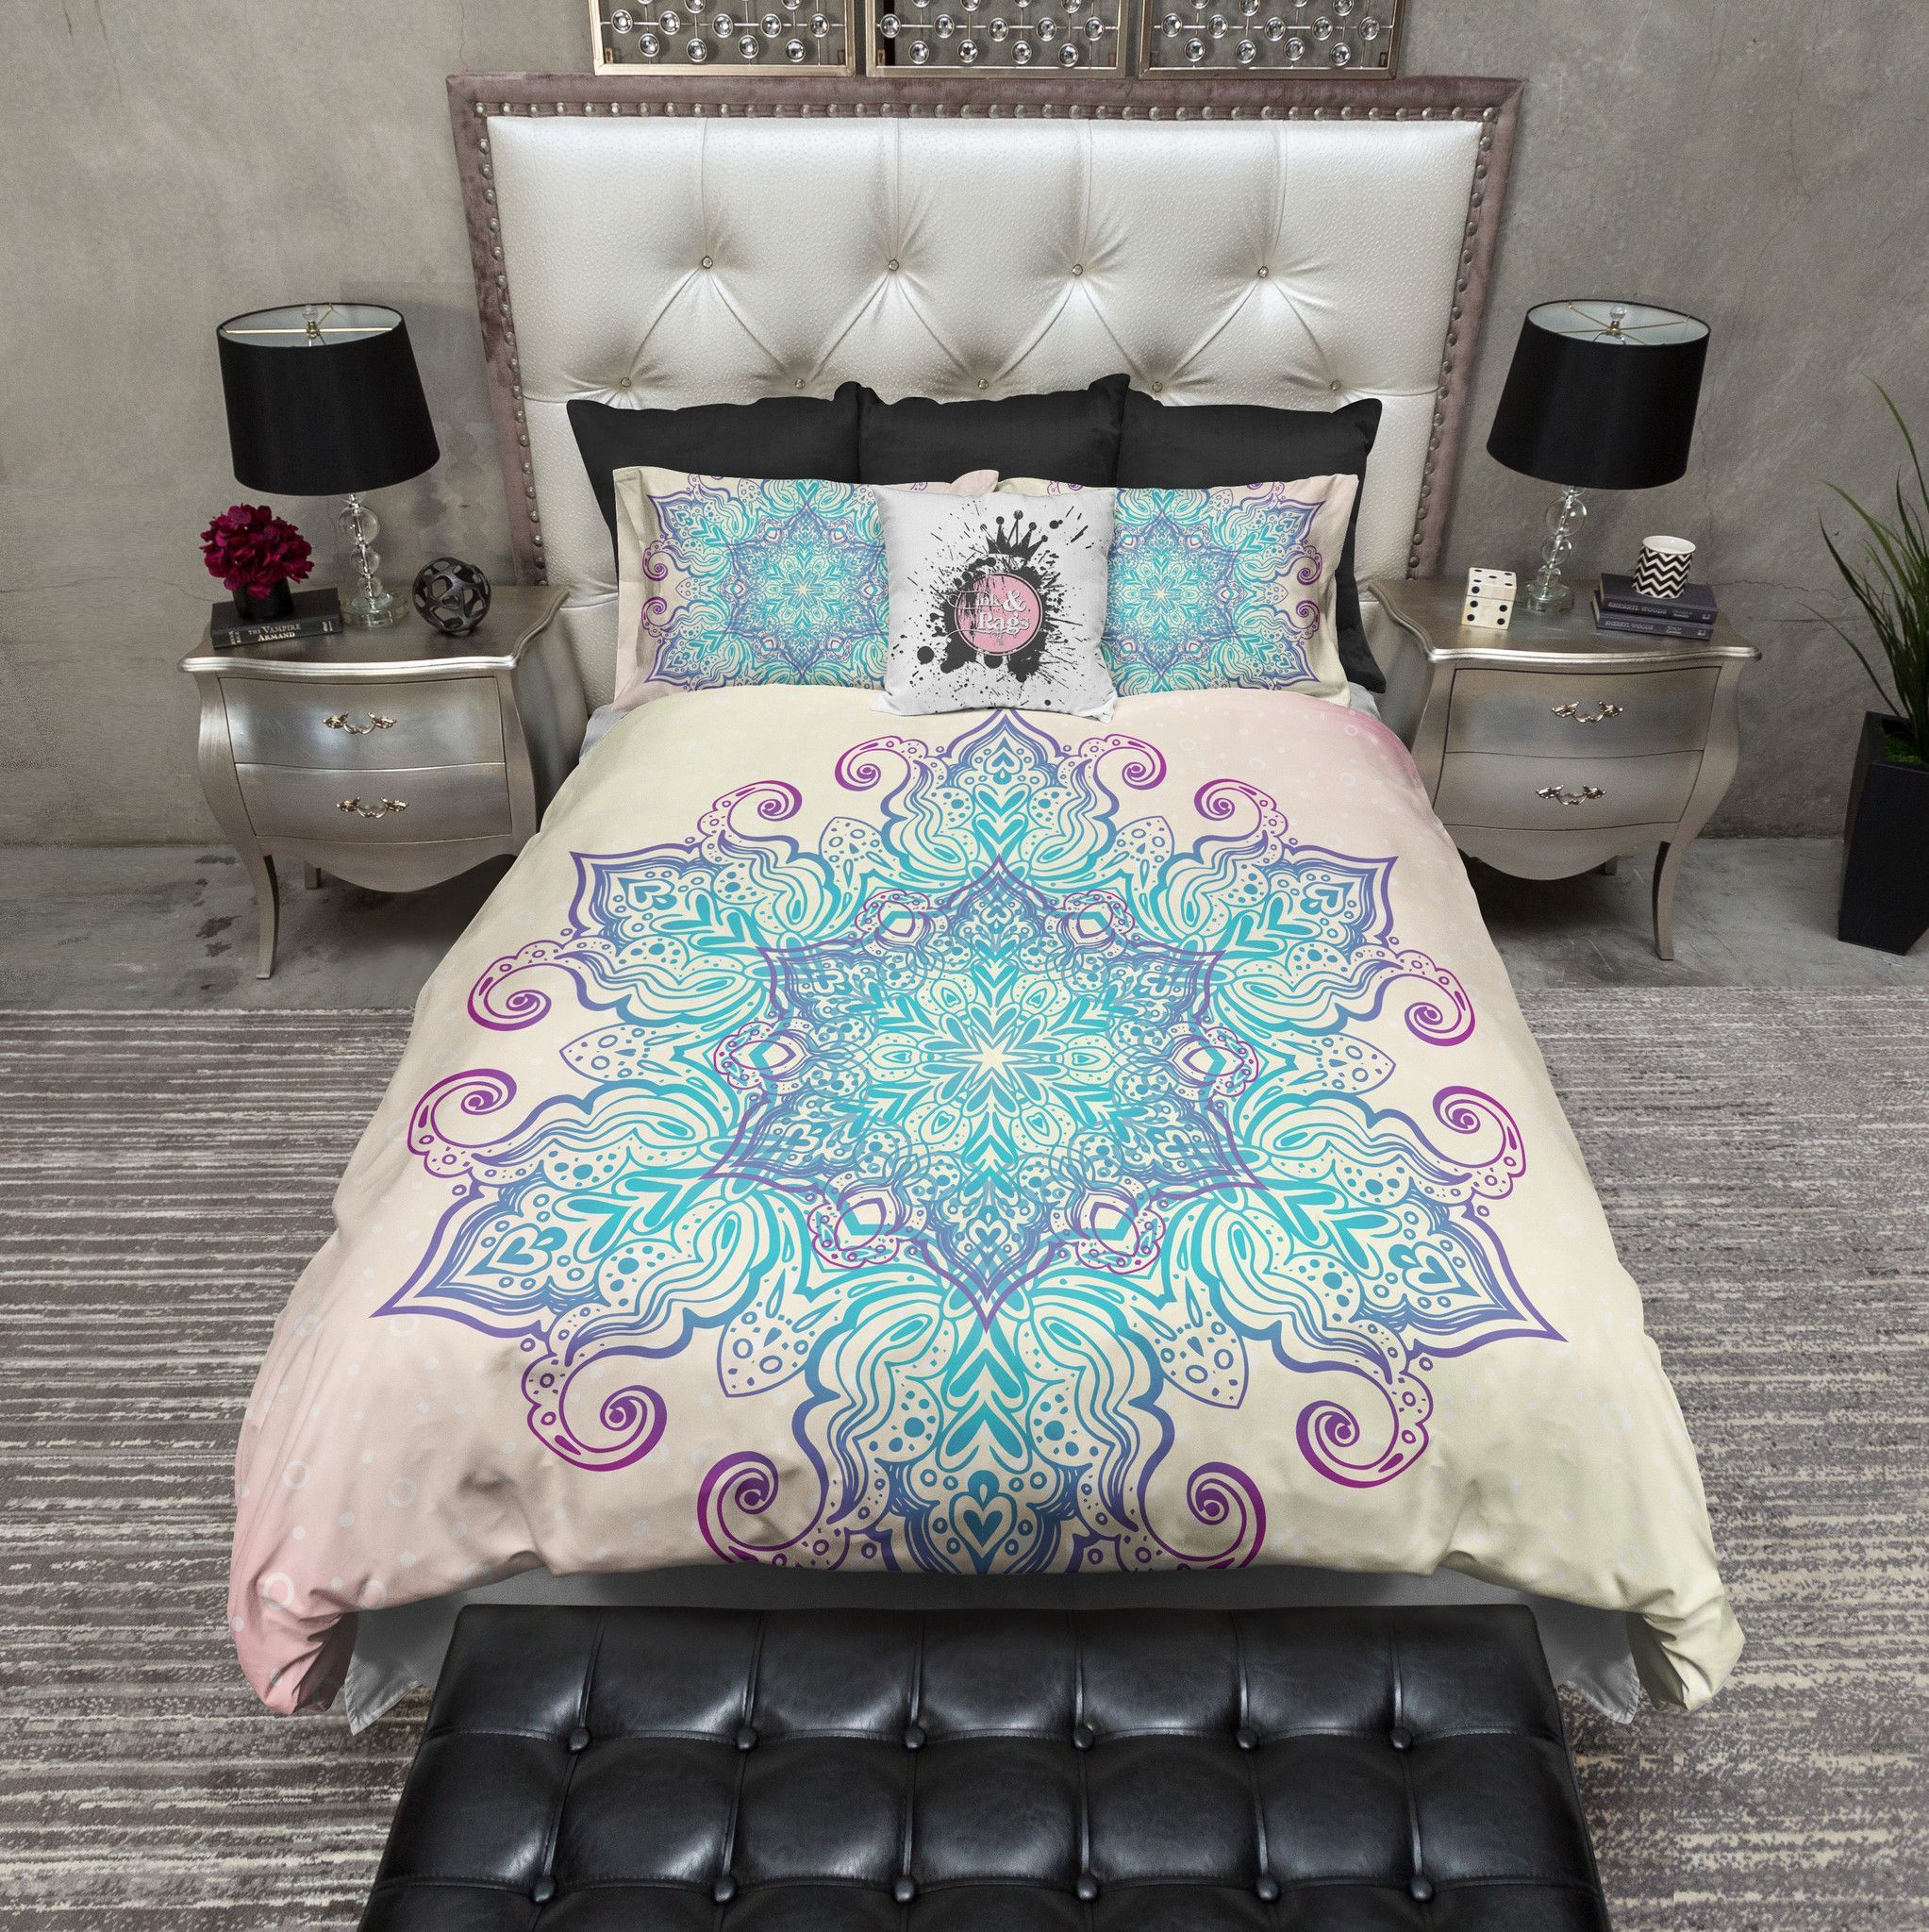 vibrant duvet cotton over paisley amp milano sham shipping of orders pillow shams cover set new free unique